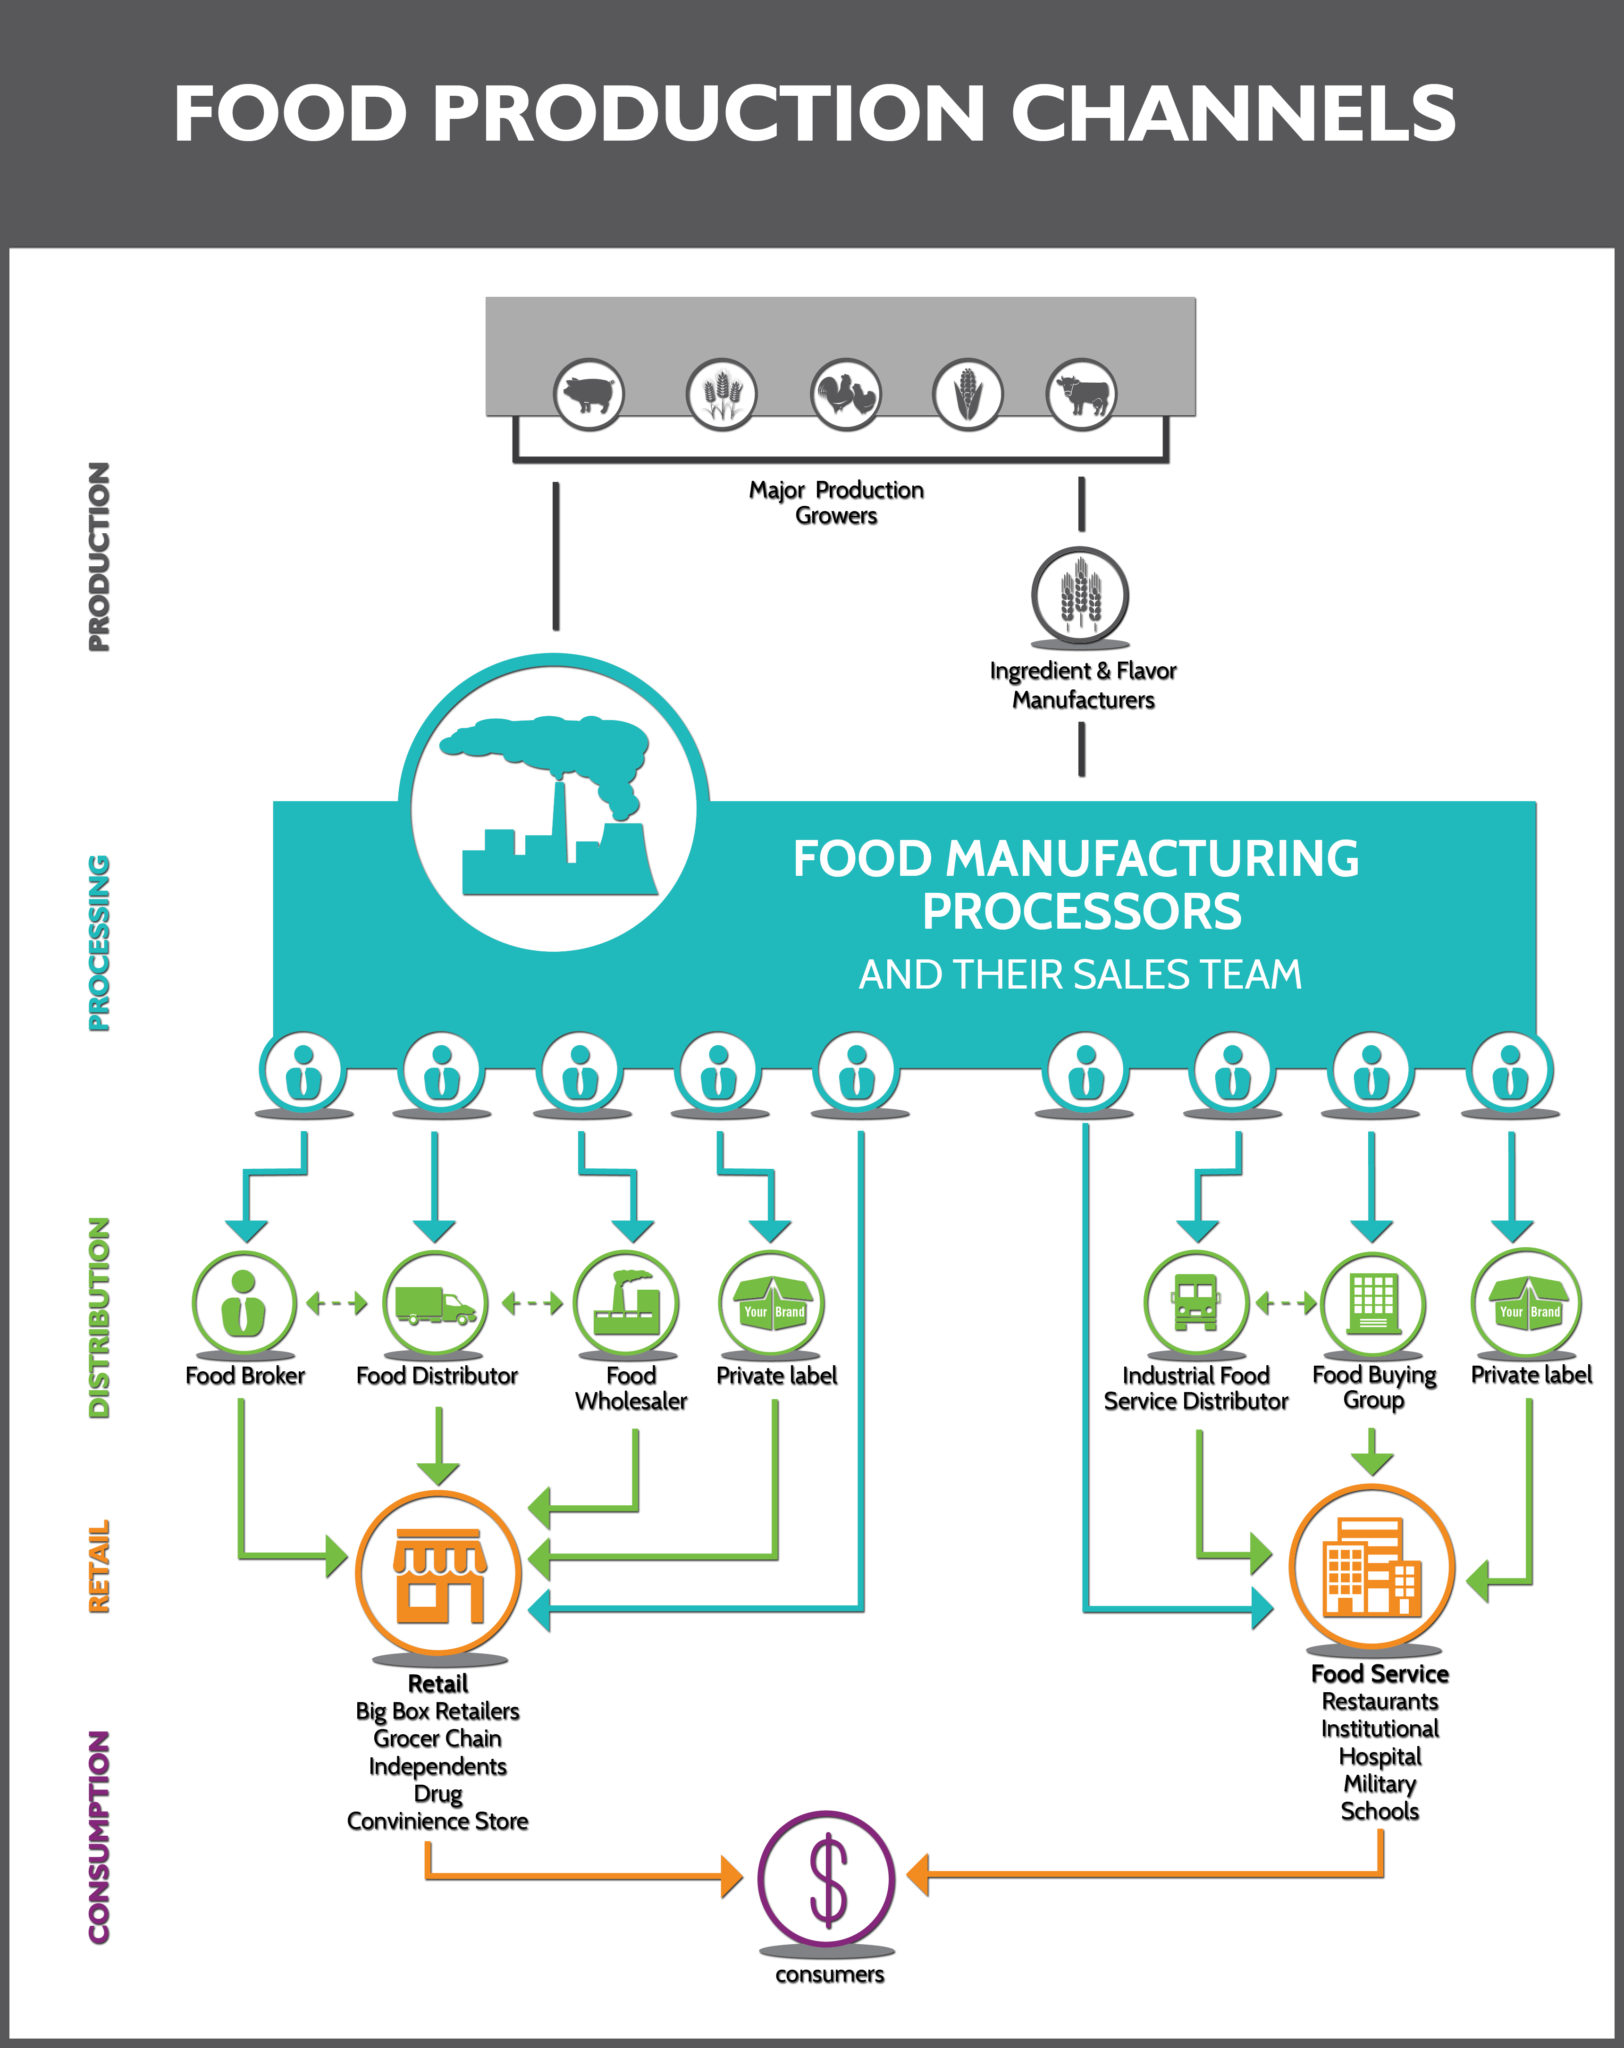 Food Industry Production Distribution Flow Chart Newpoint Process Diagram For Purchase Department Channels 01v2